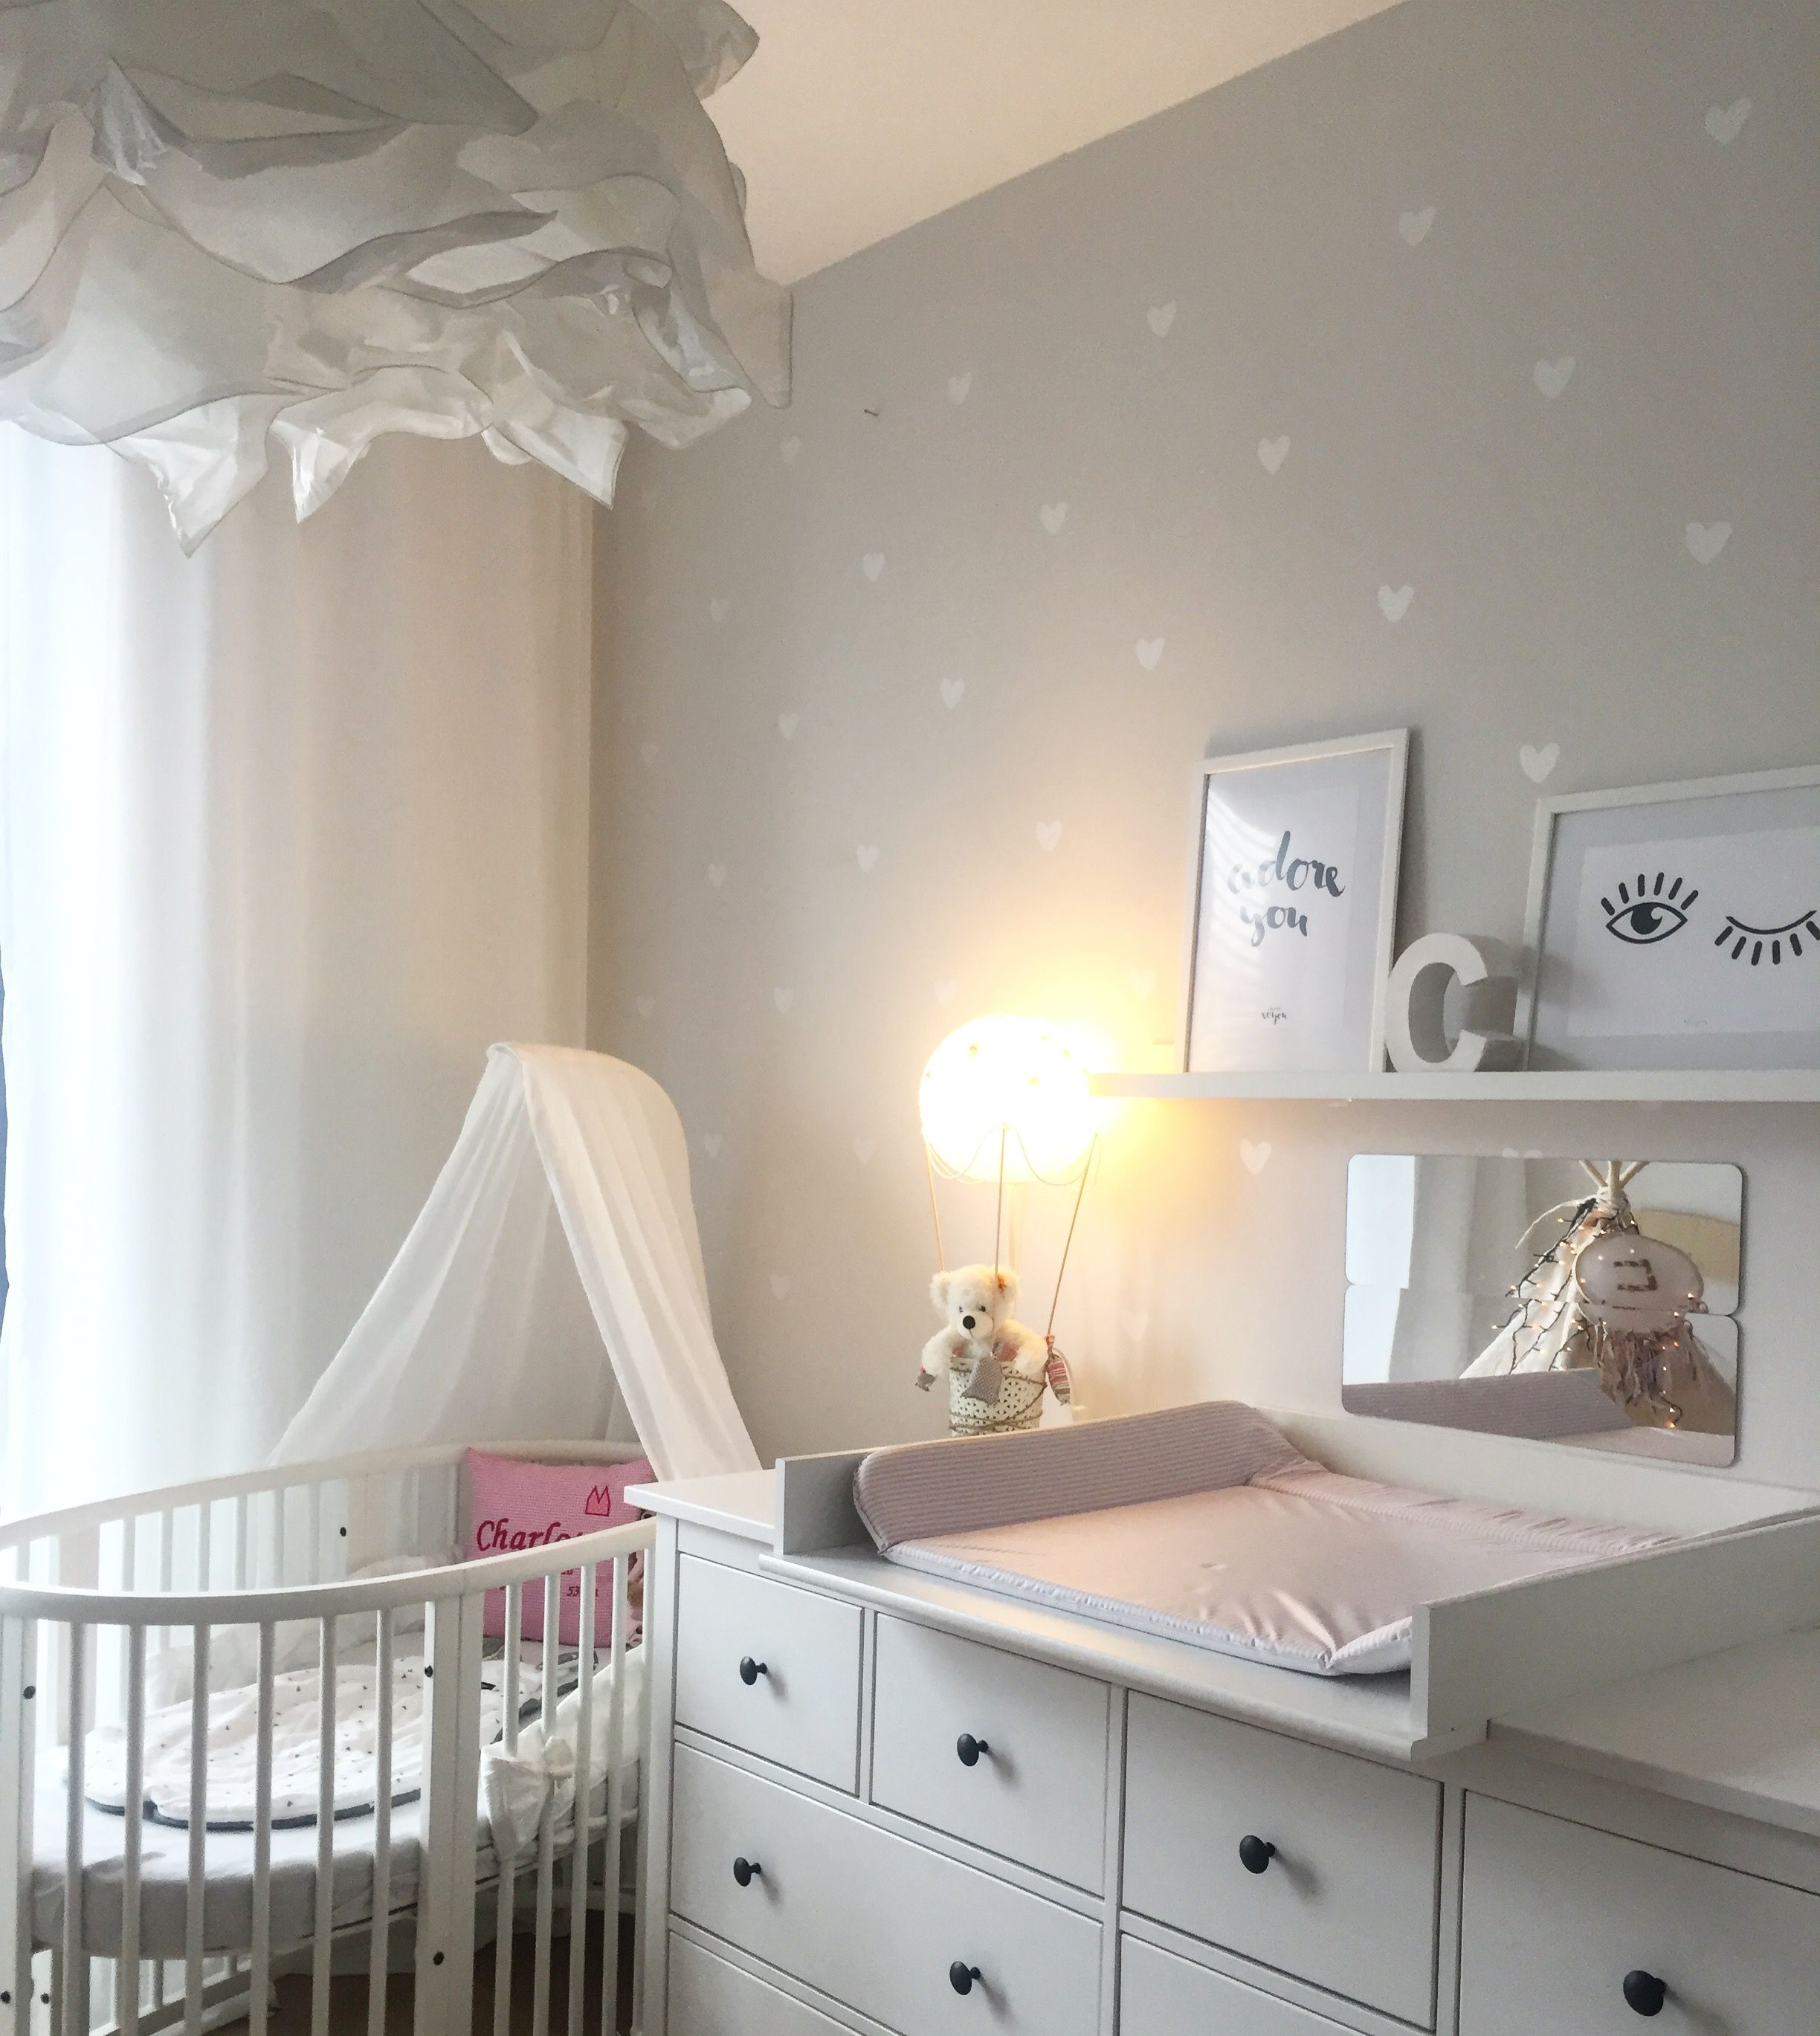 stokke babybett kinderzimmer babyzimmer herzchen ikea wickelkommode hemnes t a n n n y. Black Bedroom Furniture Sets. Home Design Ideas